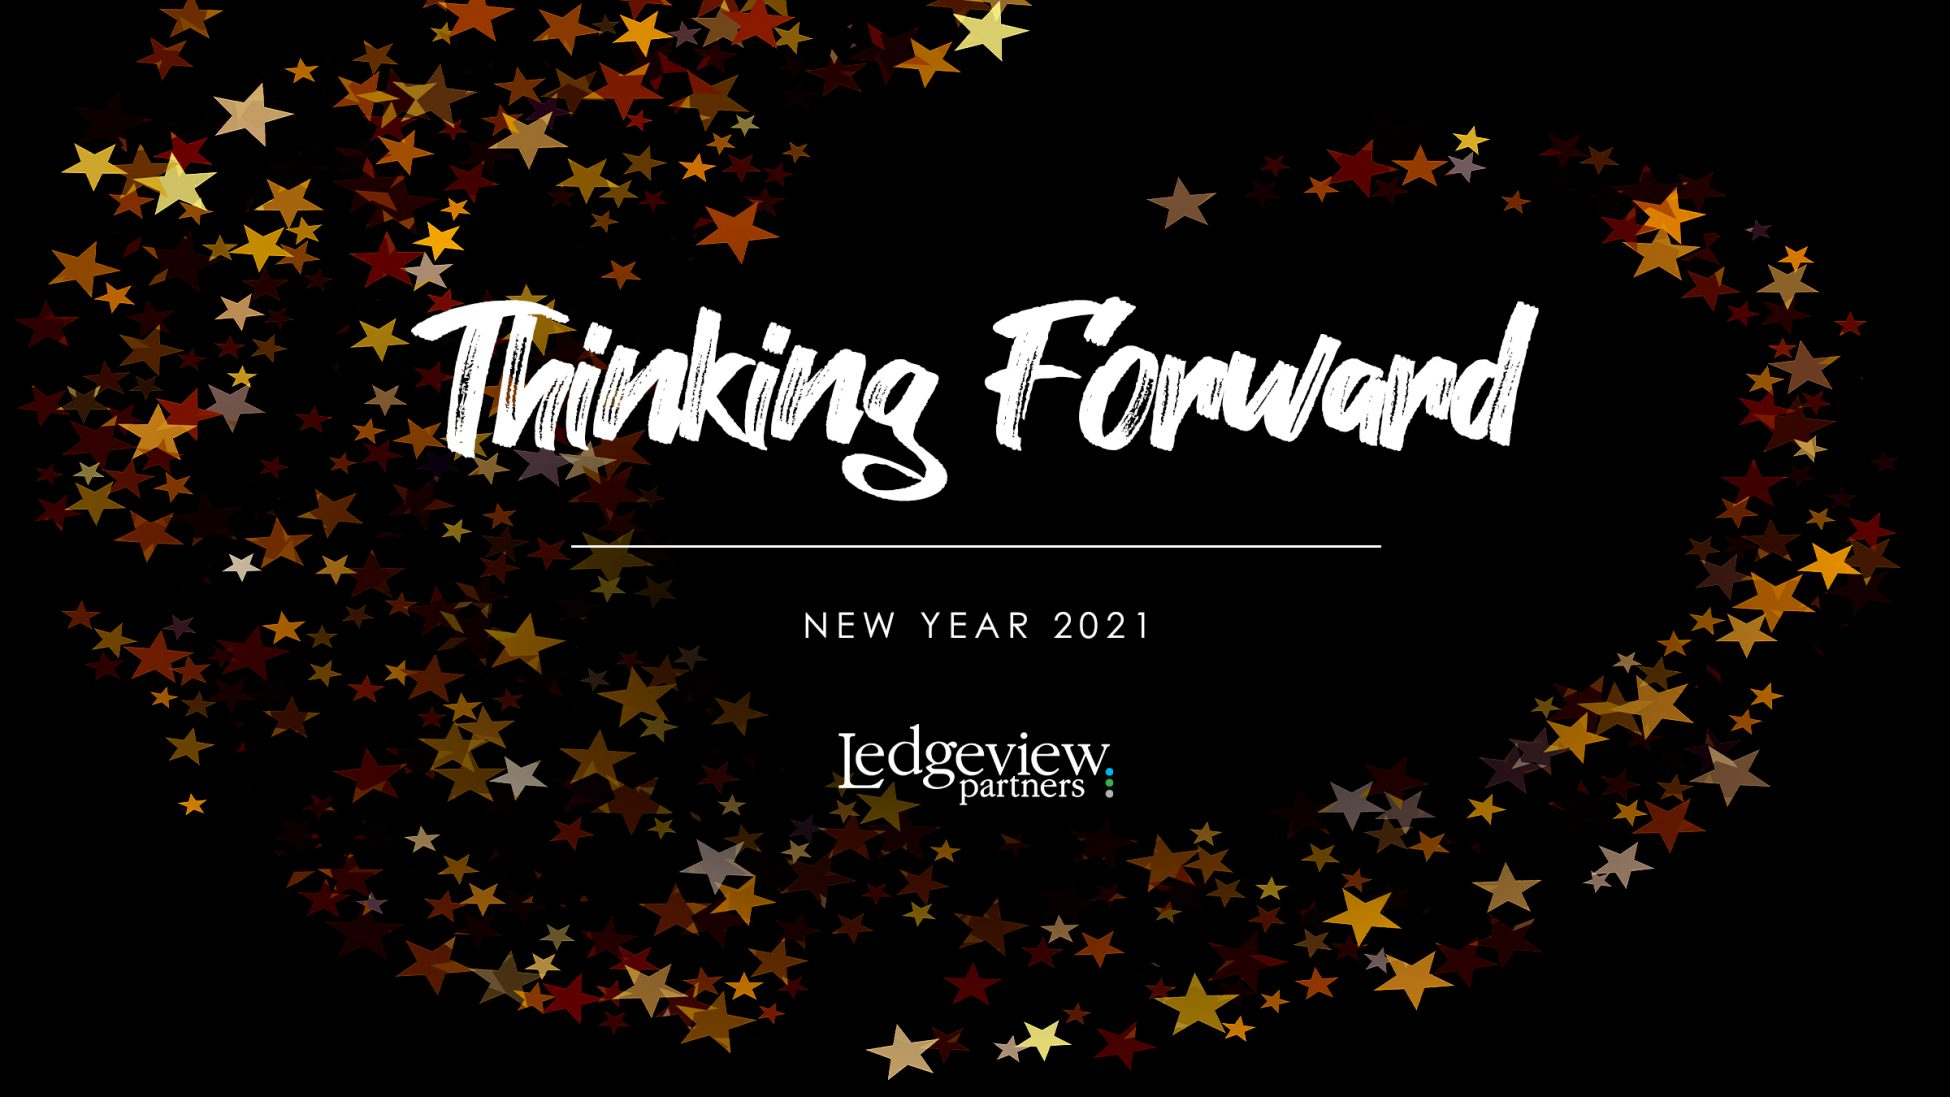 Thinking Forward this New Year's Eve